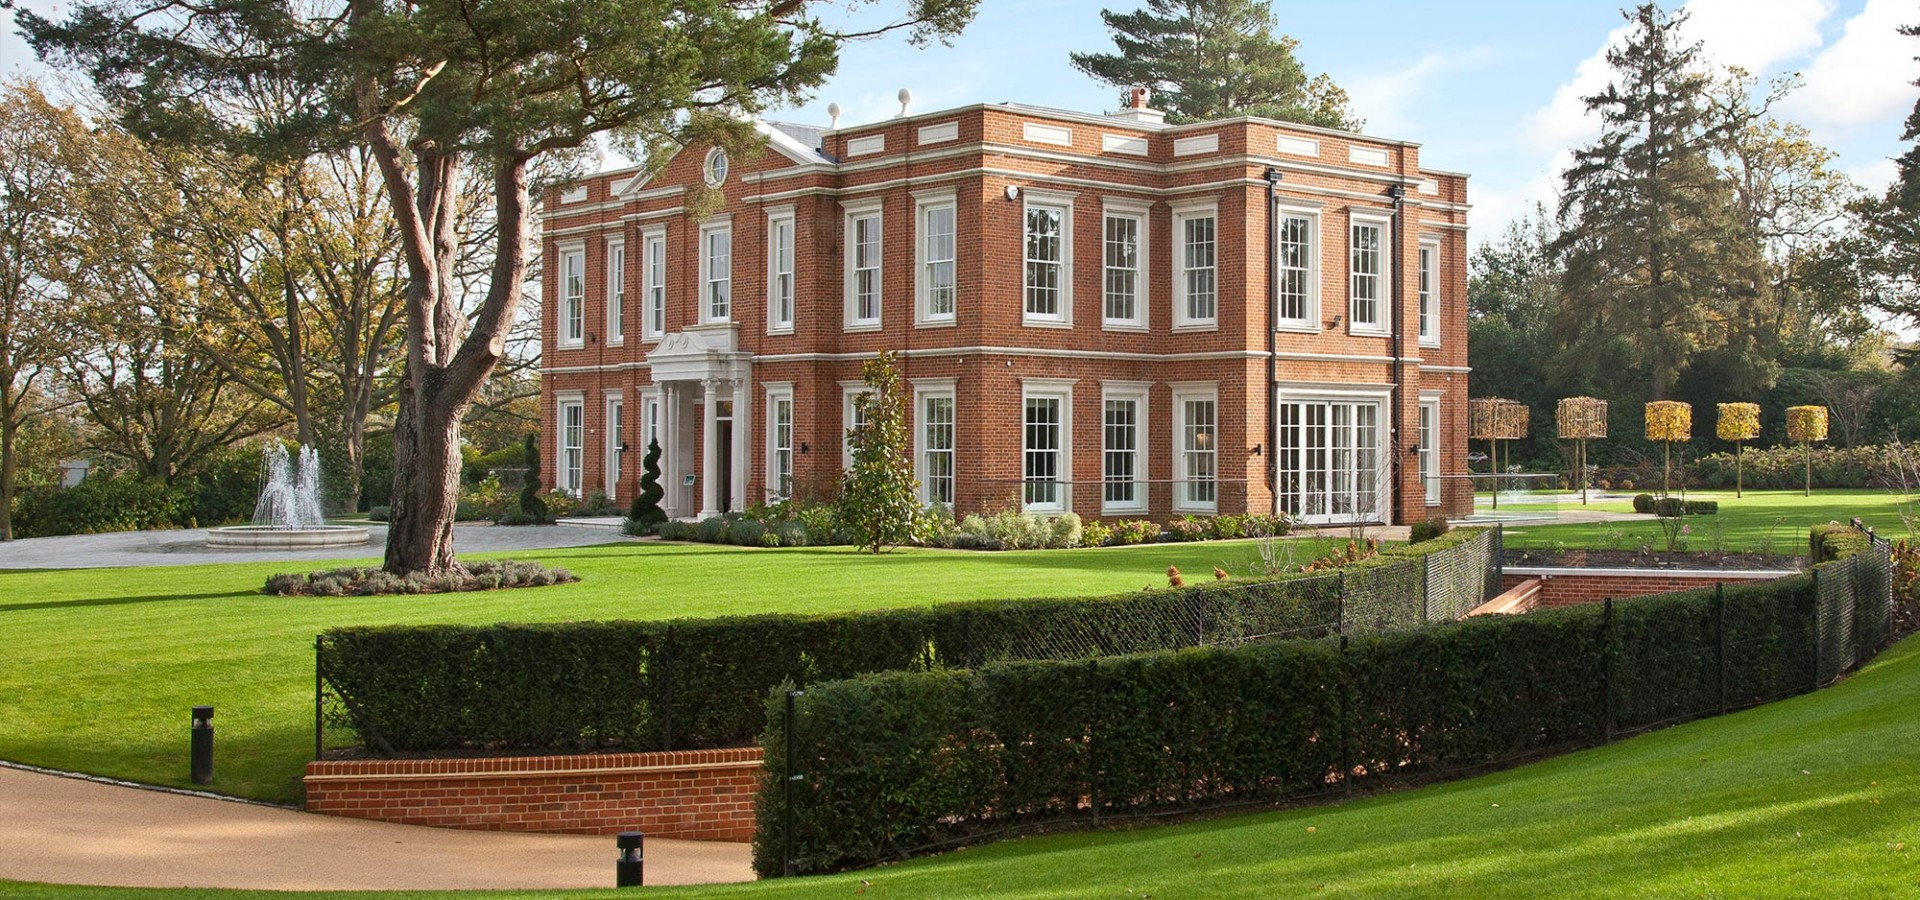 crossacres-wentworth-estate-our-work-private-clients-ascot-design-view1.jpg